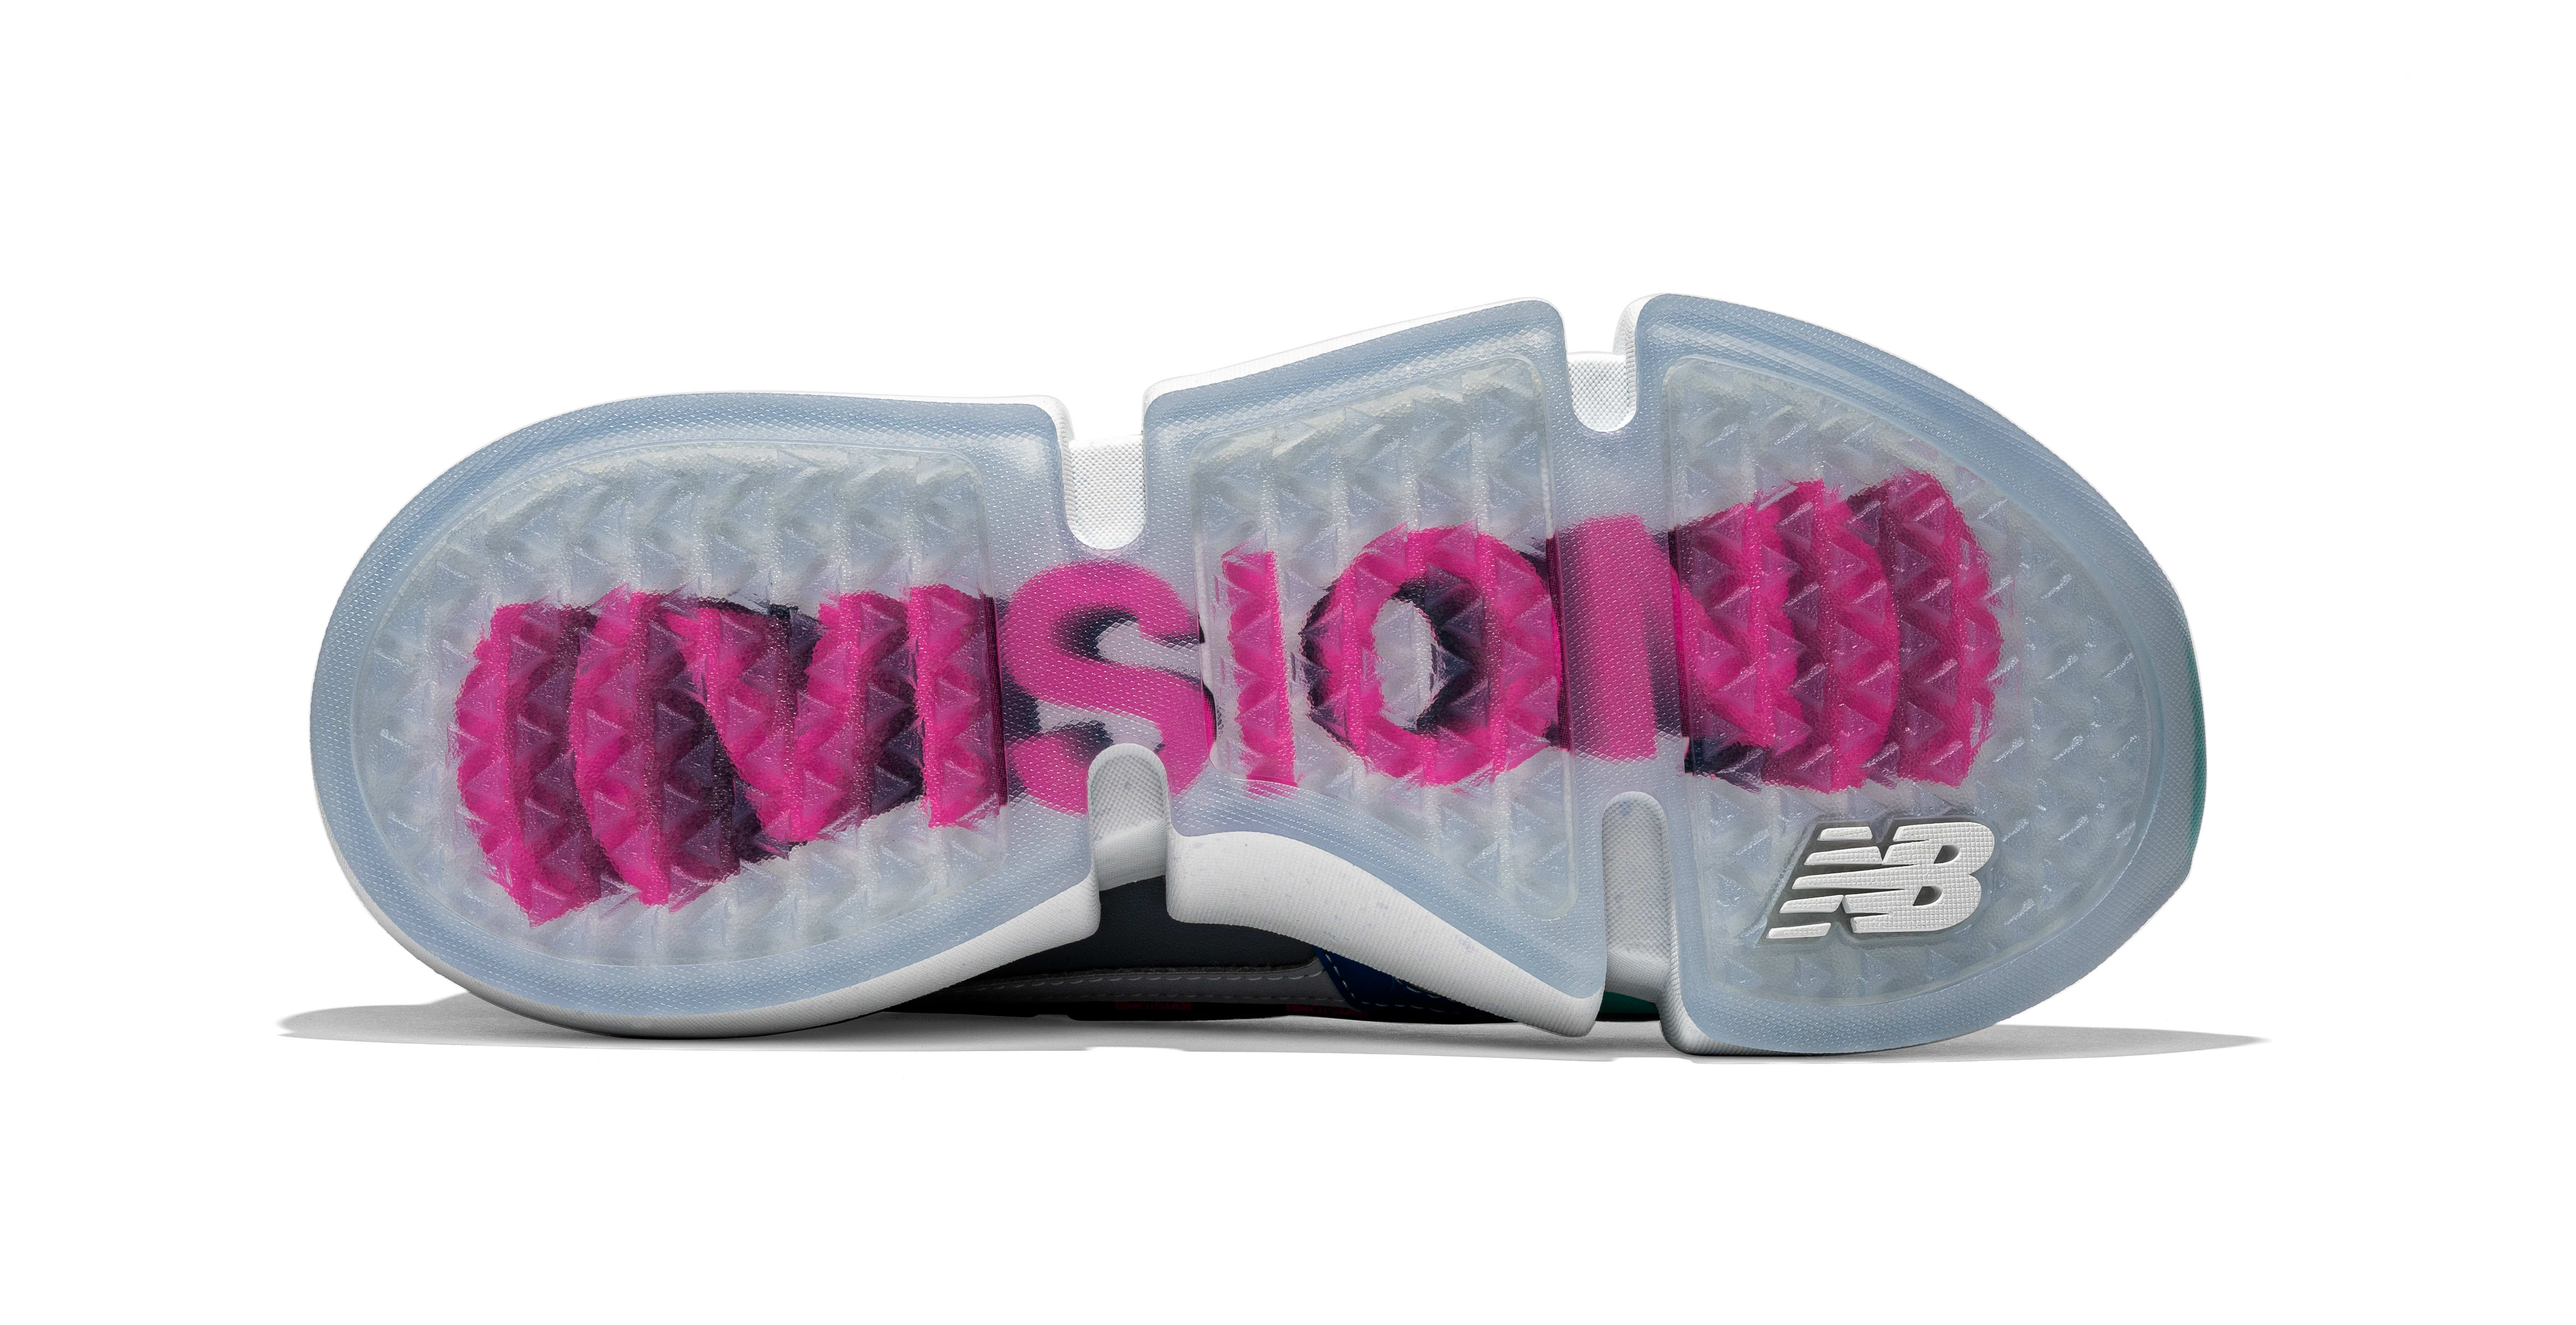 Greenhouse x Jaden Smith New Balance Vision Racer 'Surplus' Outsole